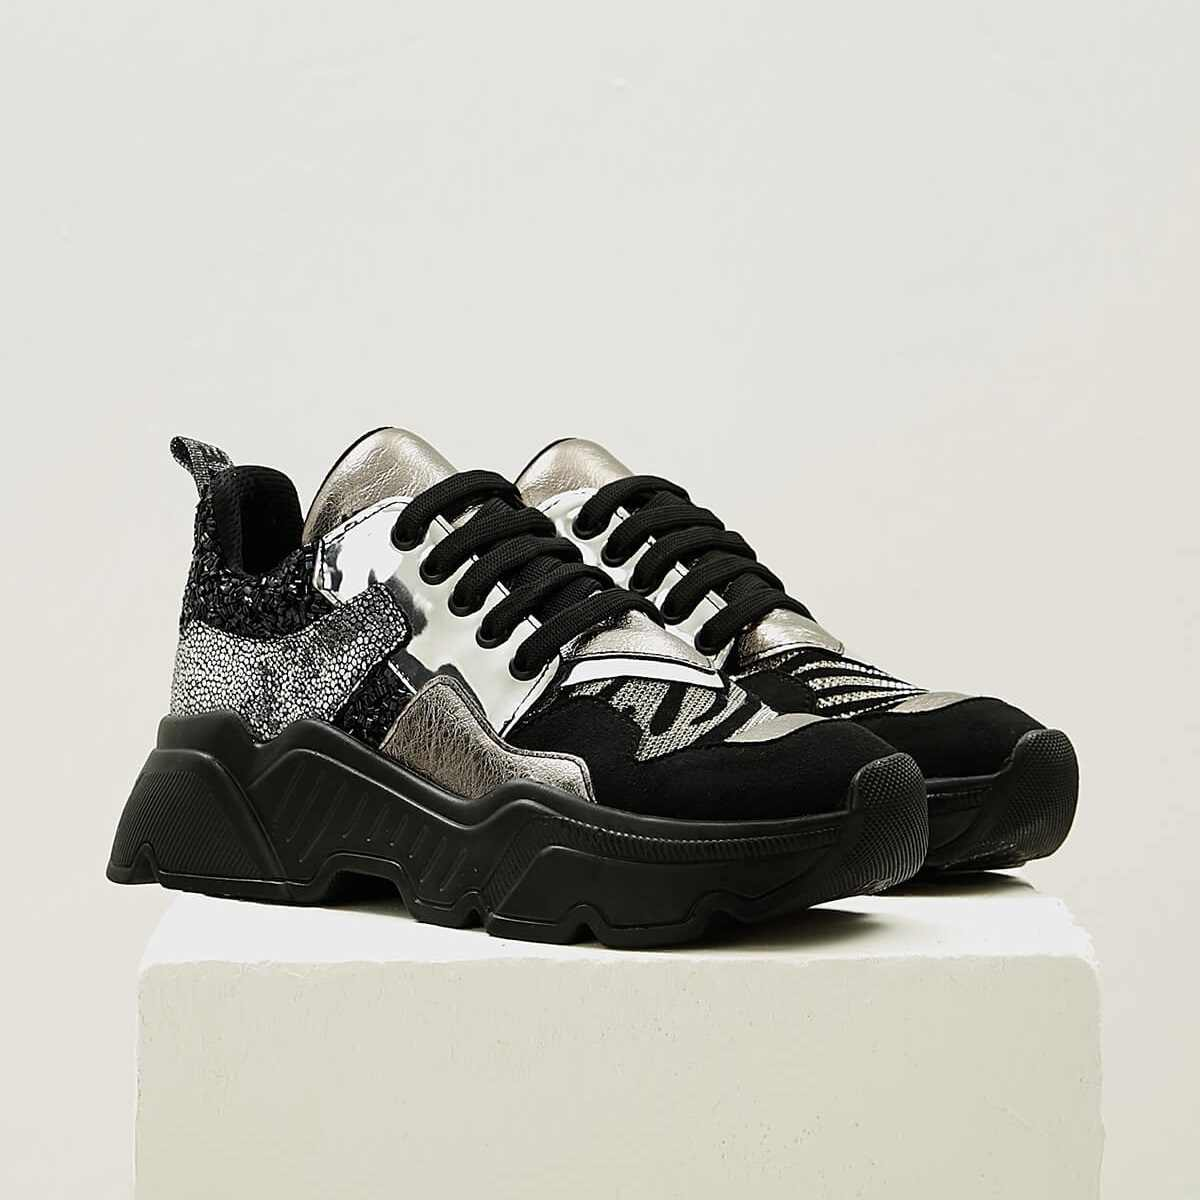 Mio Gusto Brand BENDIS, Top Selling High Quality, 5Cm Platform Height,  Women 's Comfort Sneaker Sporting Shoes